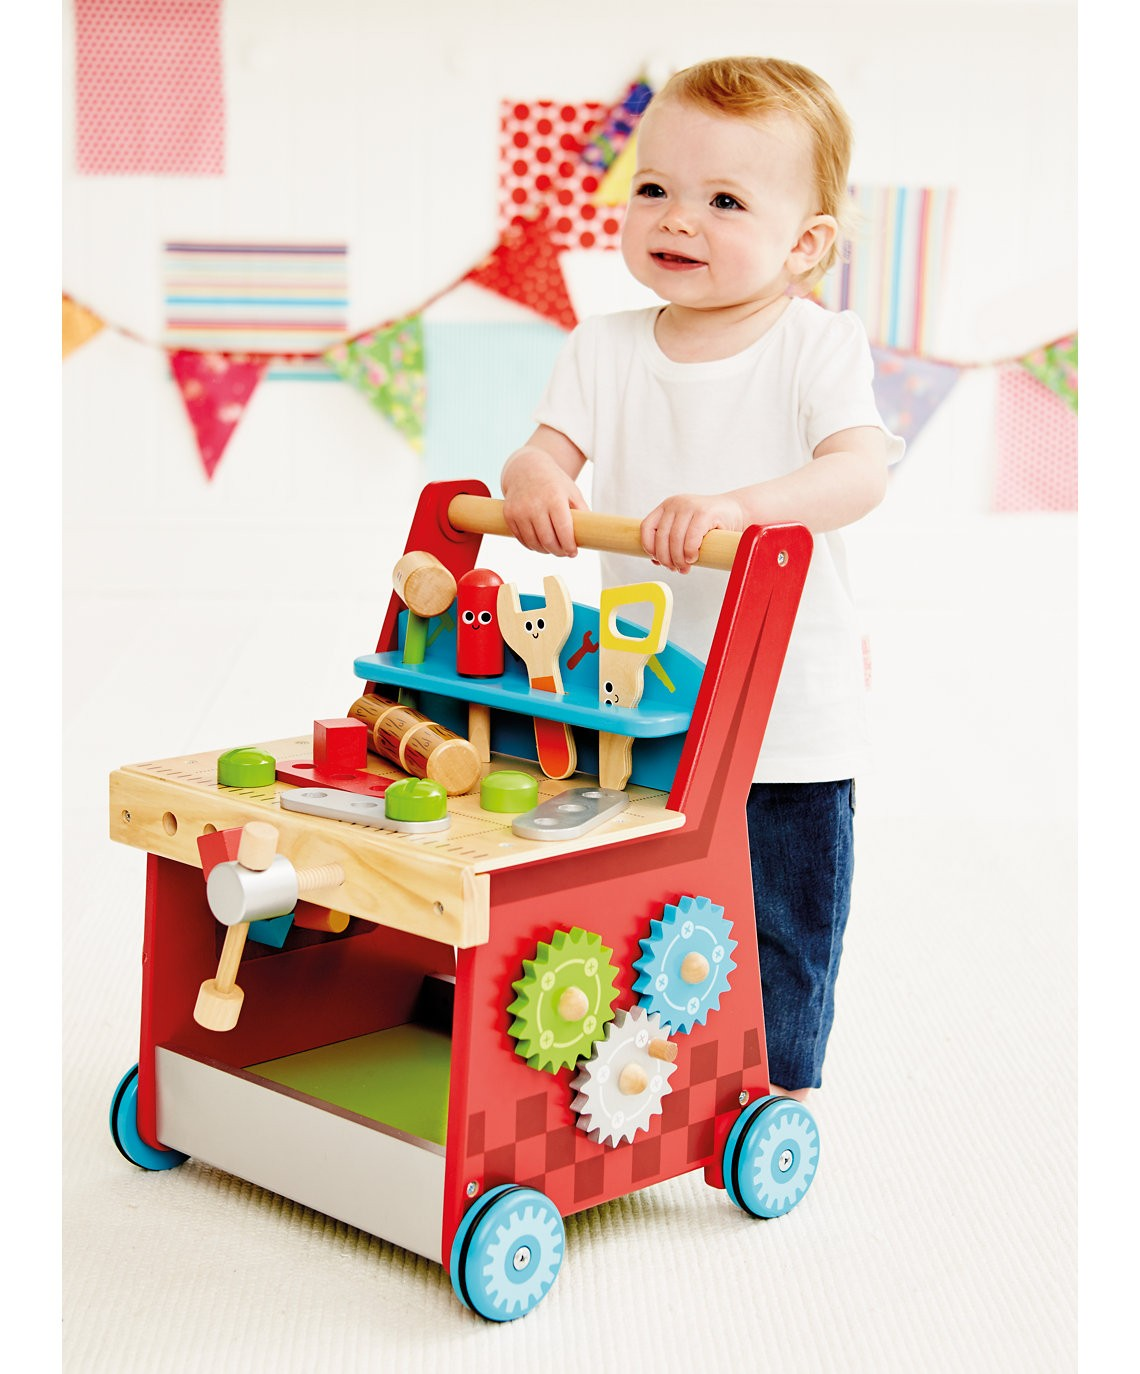 RRP: £45 Available from    Early Learning Cent  re